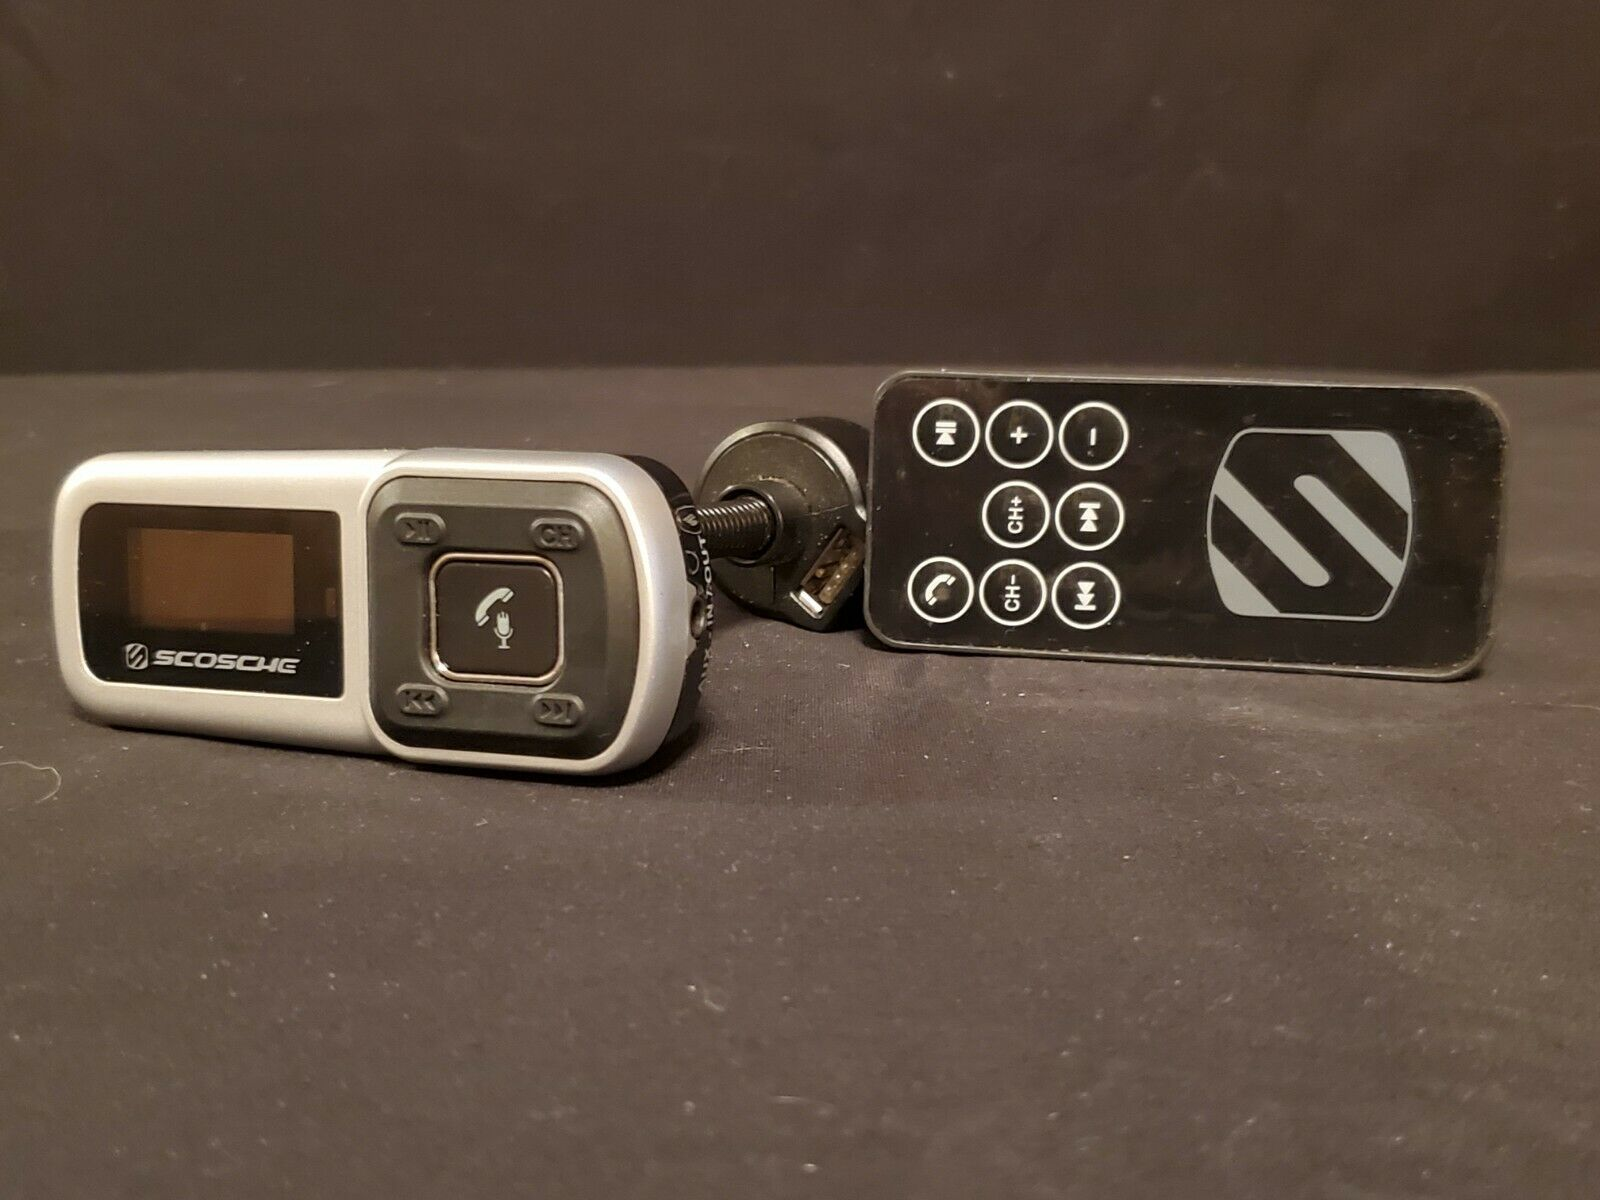 Scosche Bluetooth FM transmitter and Charger